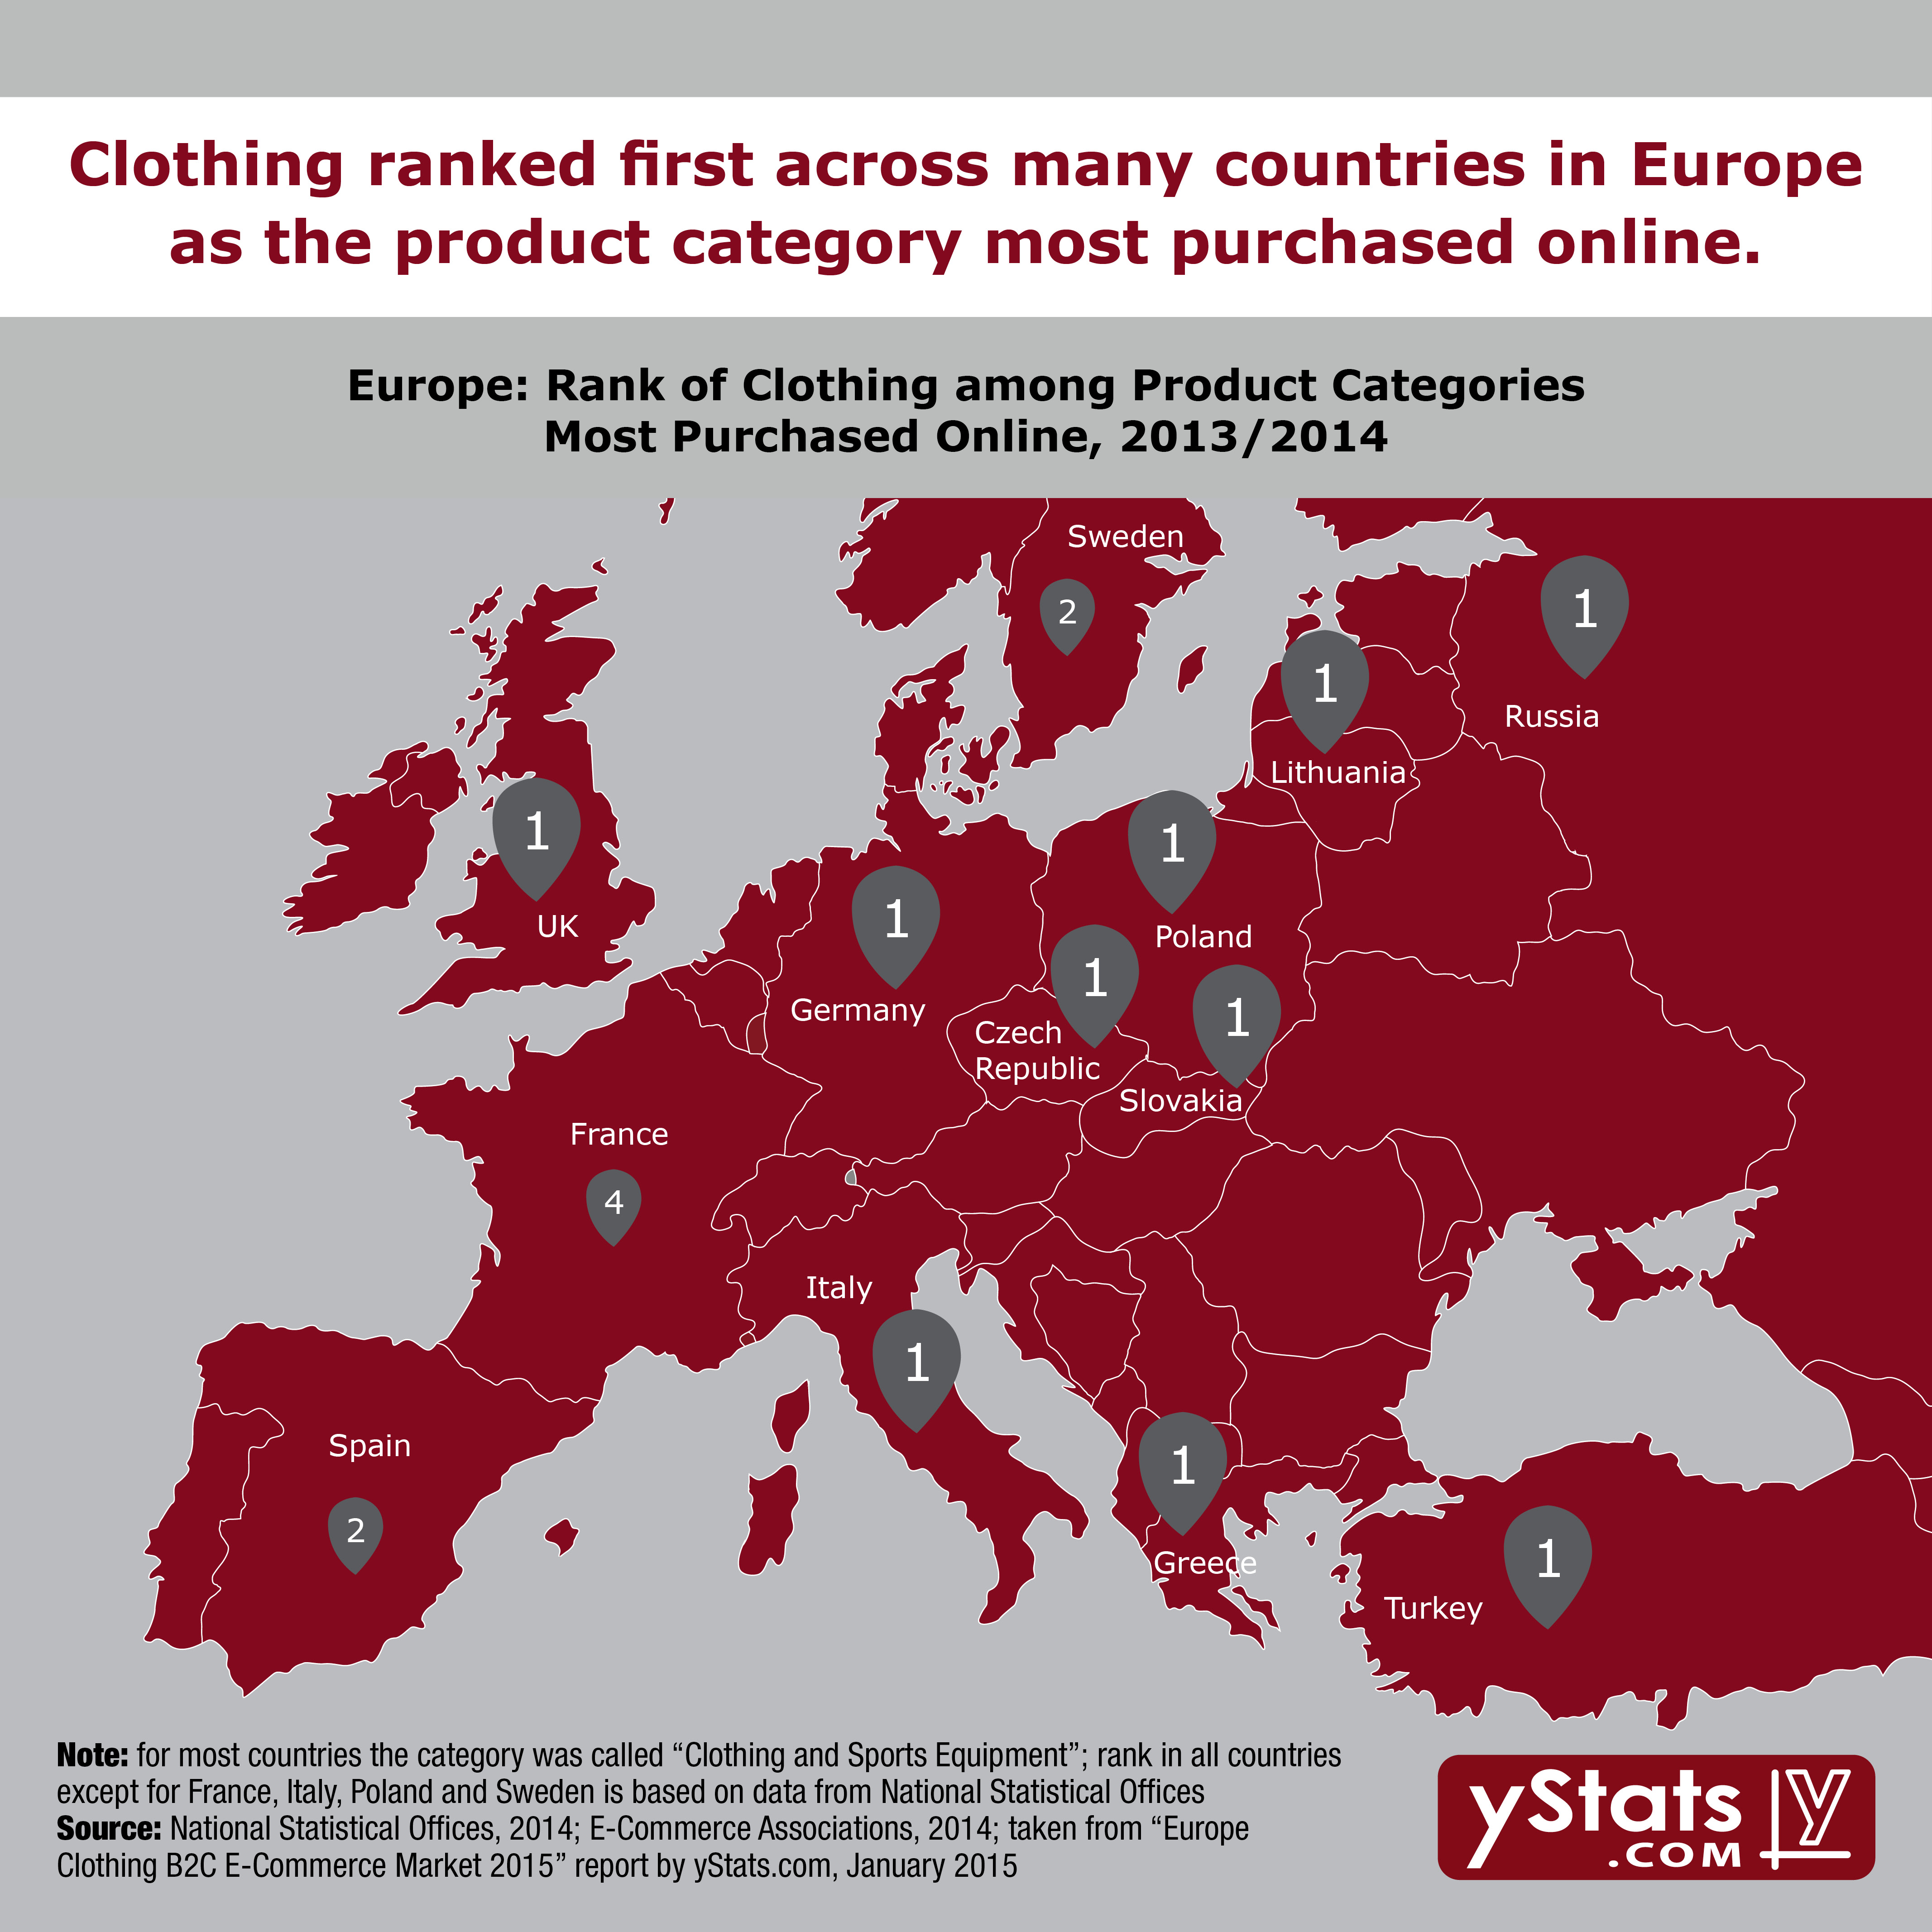 4b3b8026ace3 Clothing is Leading Product in Online Retail in Europe - yStats.com GmbH    Co. KG - Press release